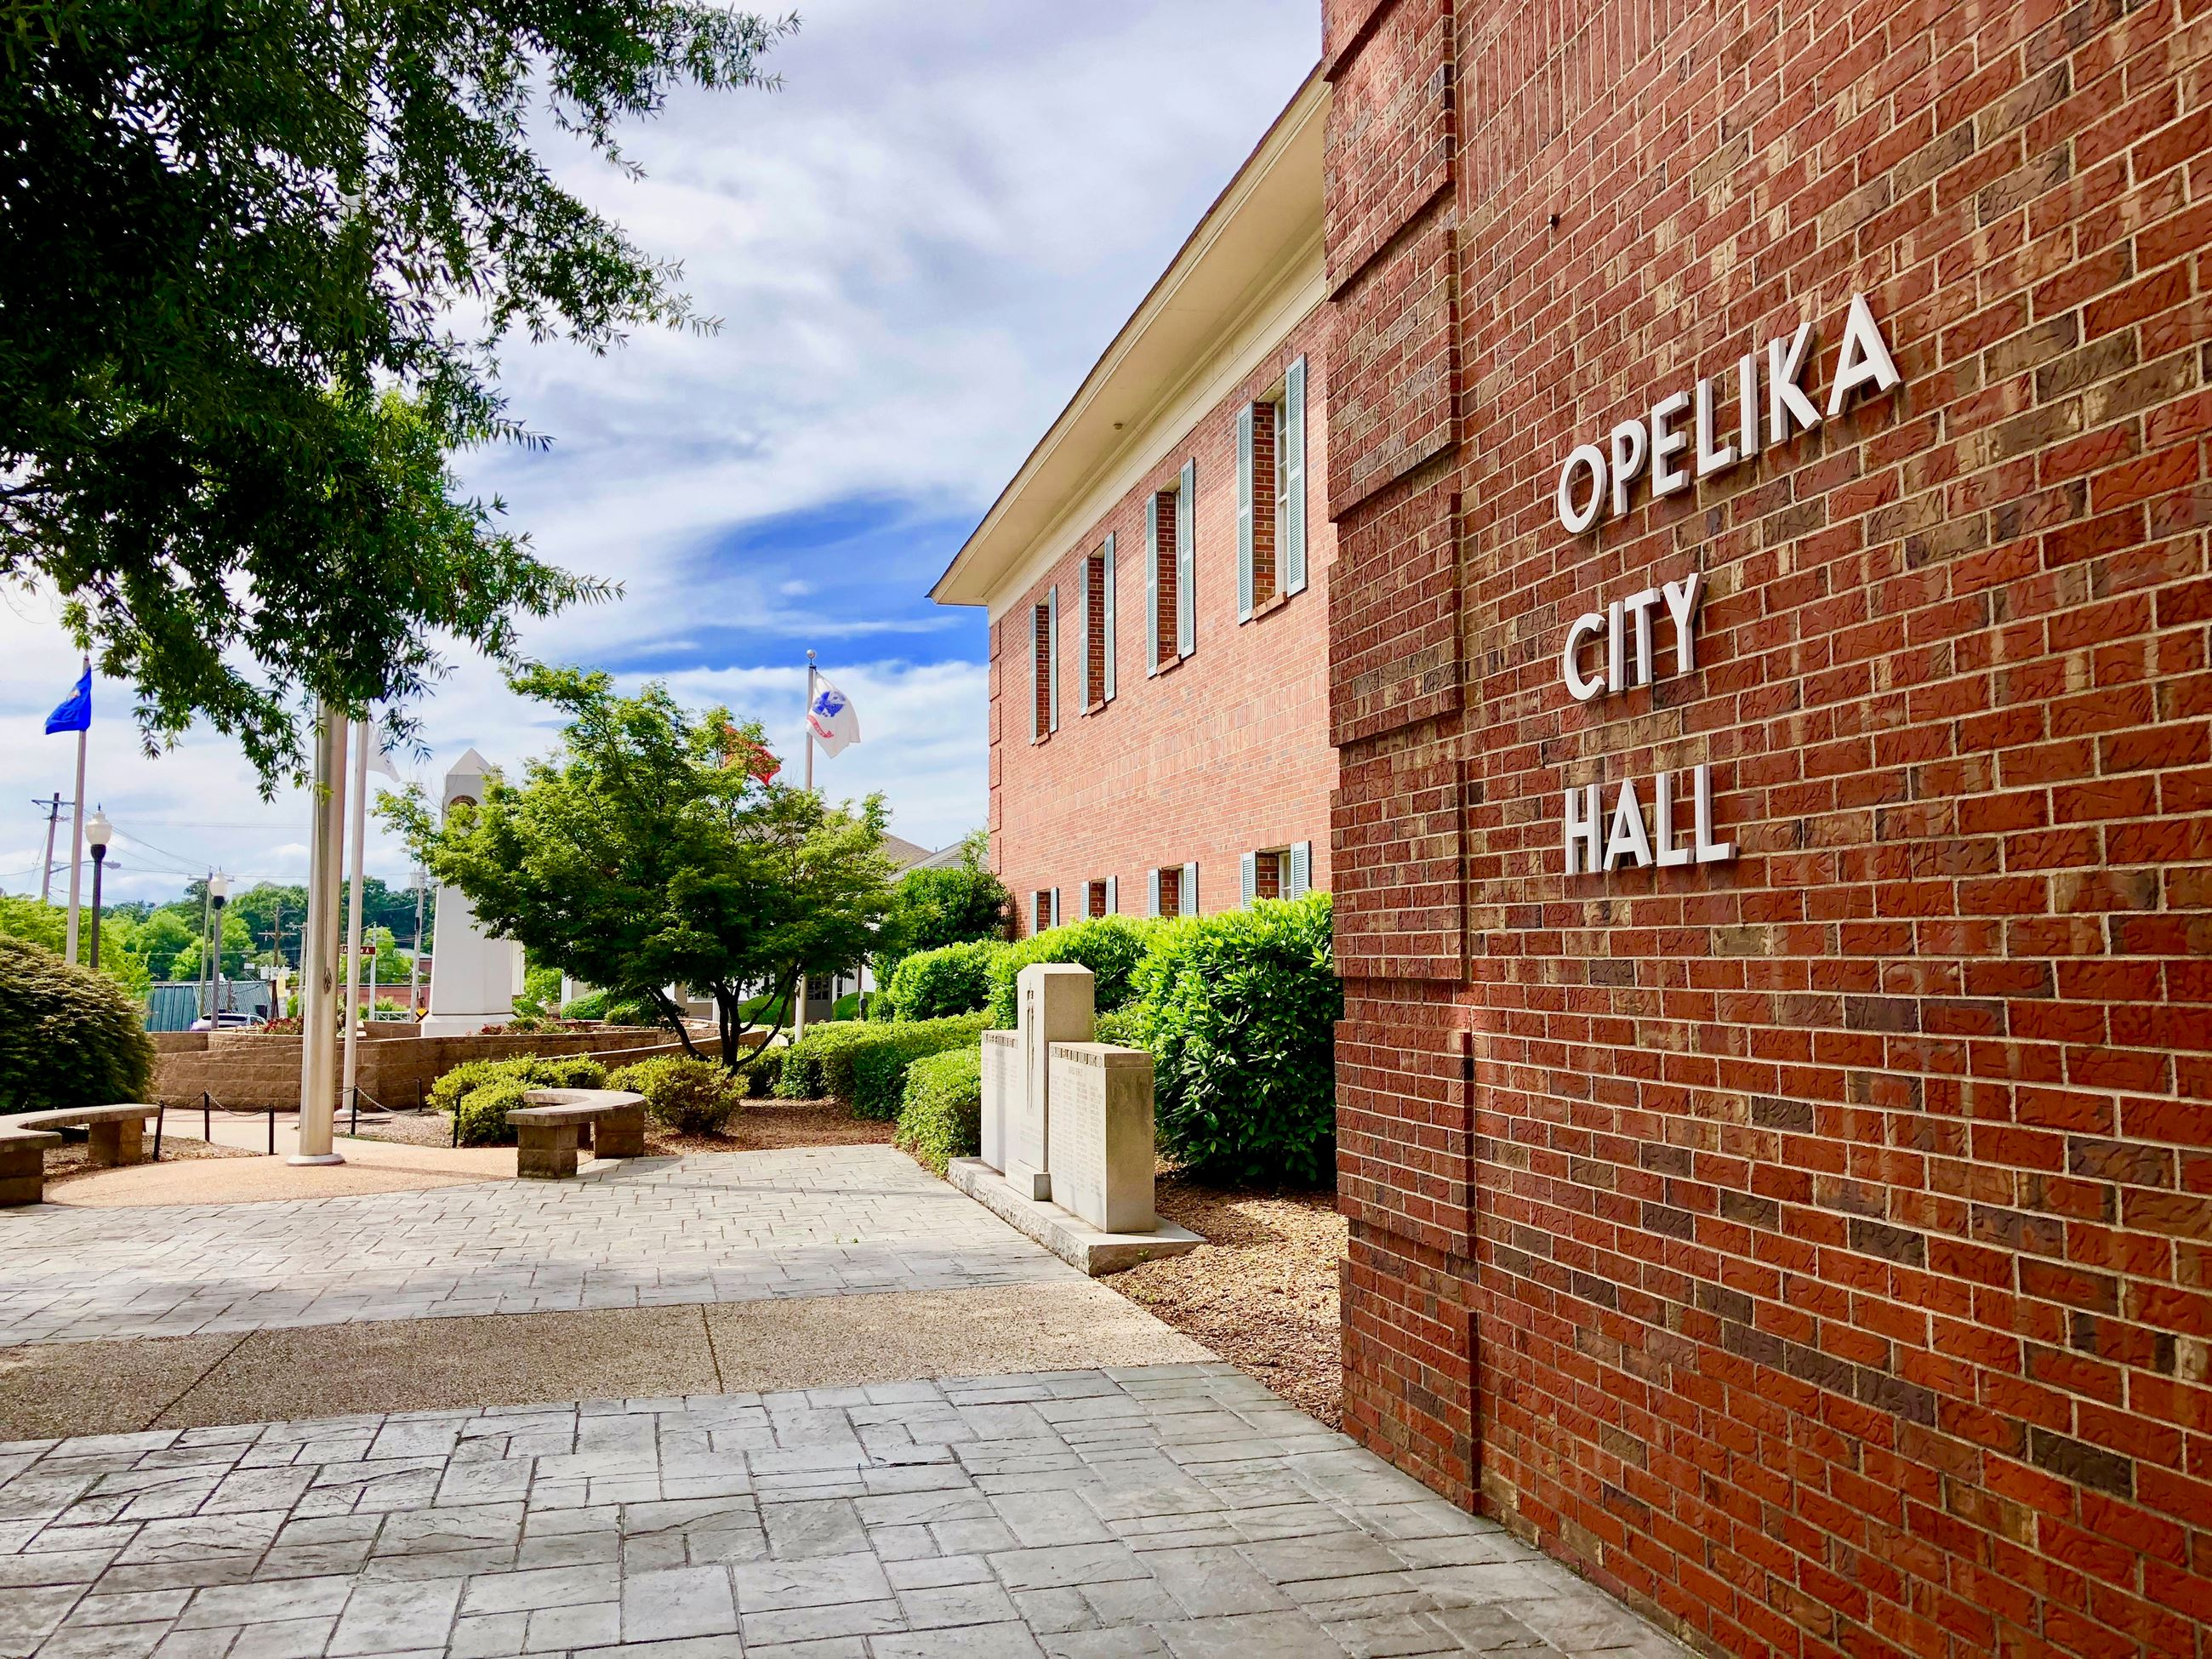 Opelika City Hall image